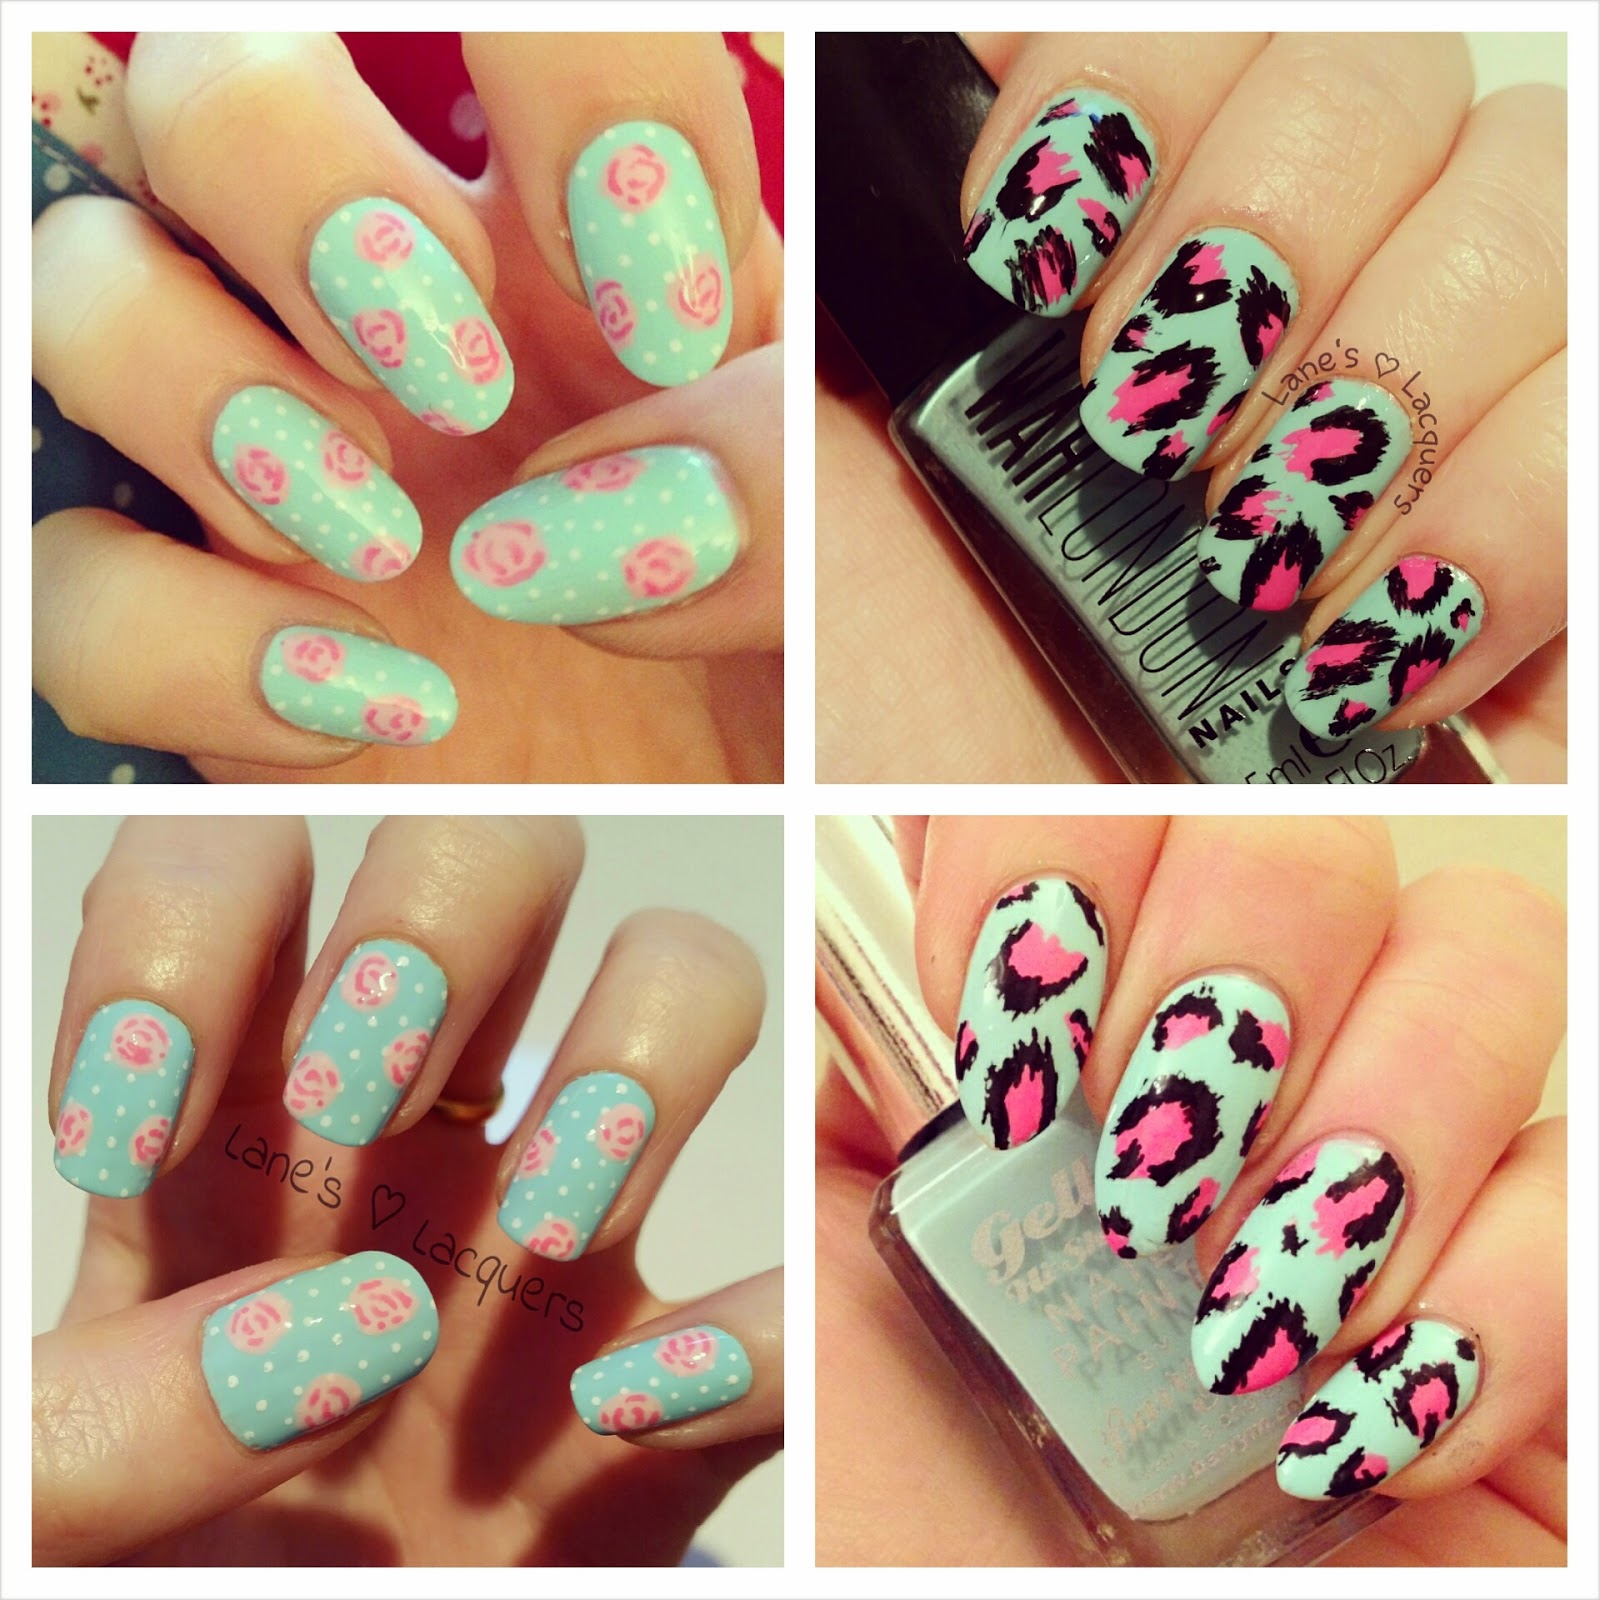 lanes-lacquers-my-mint-nails-mani-swap